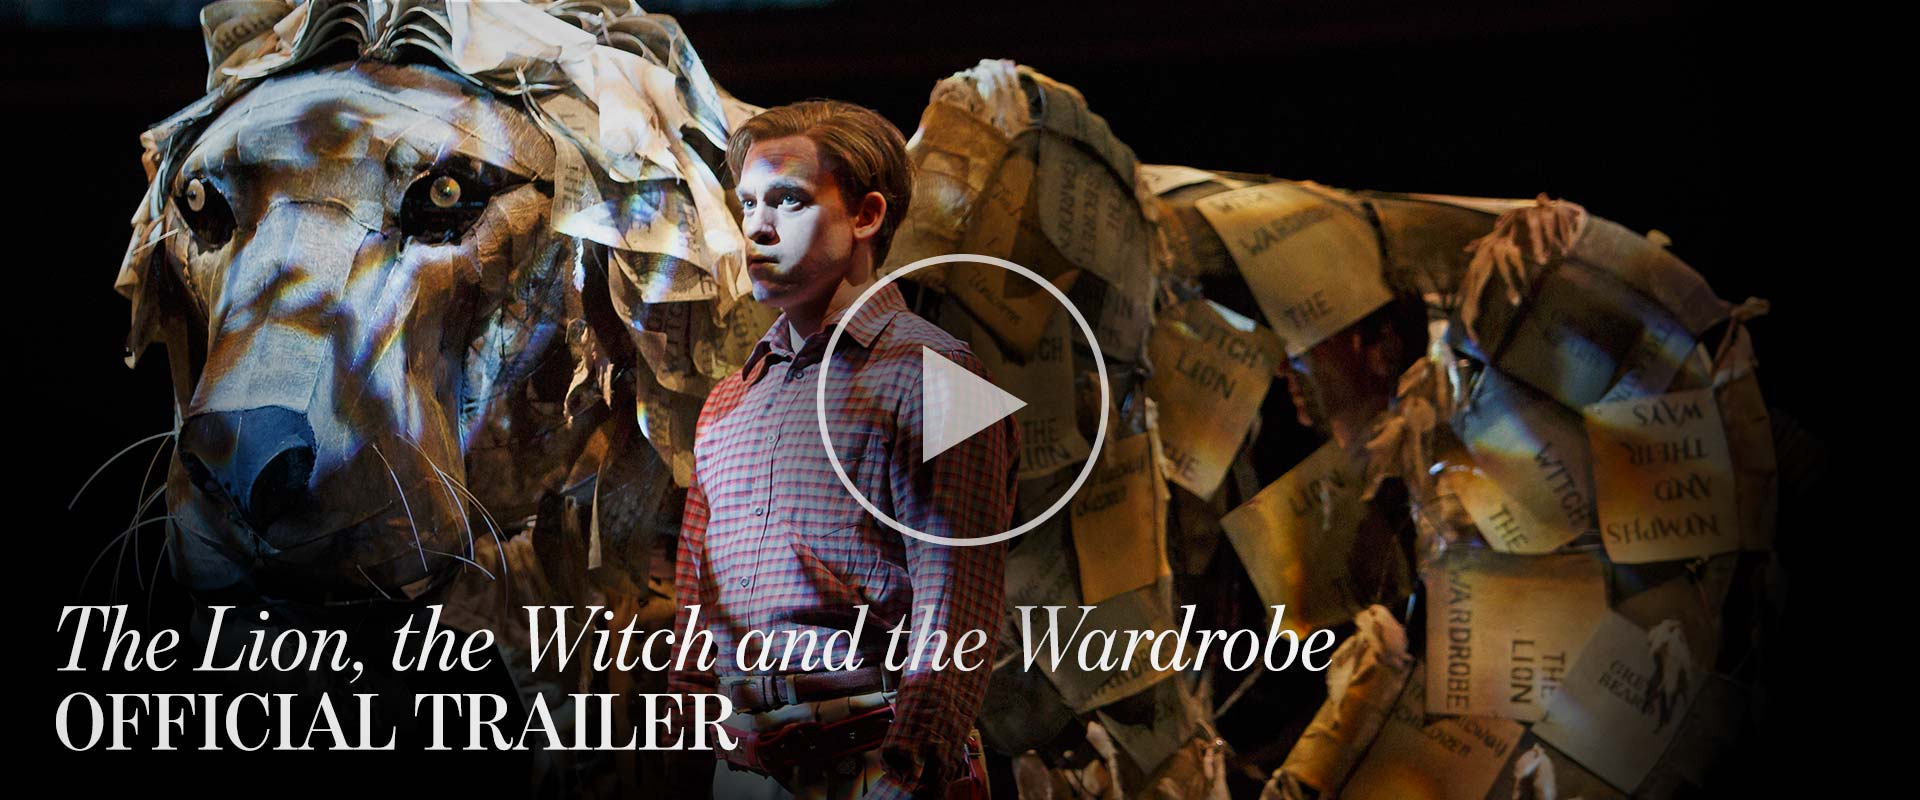 The Lion, the Witch and the Wardrobe Official Trailer